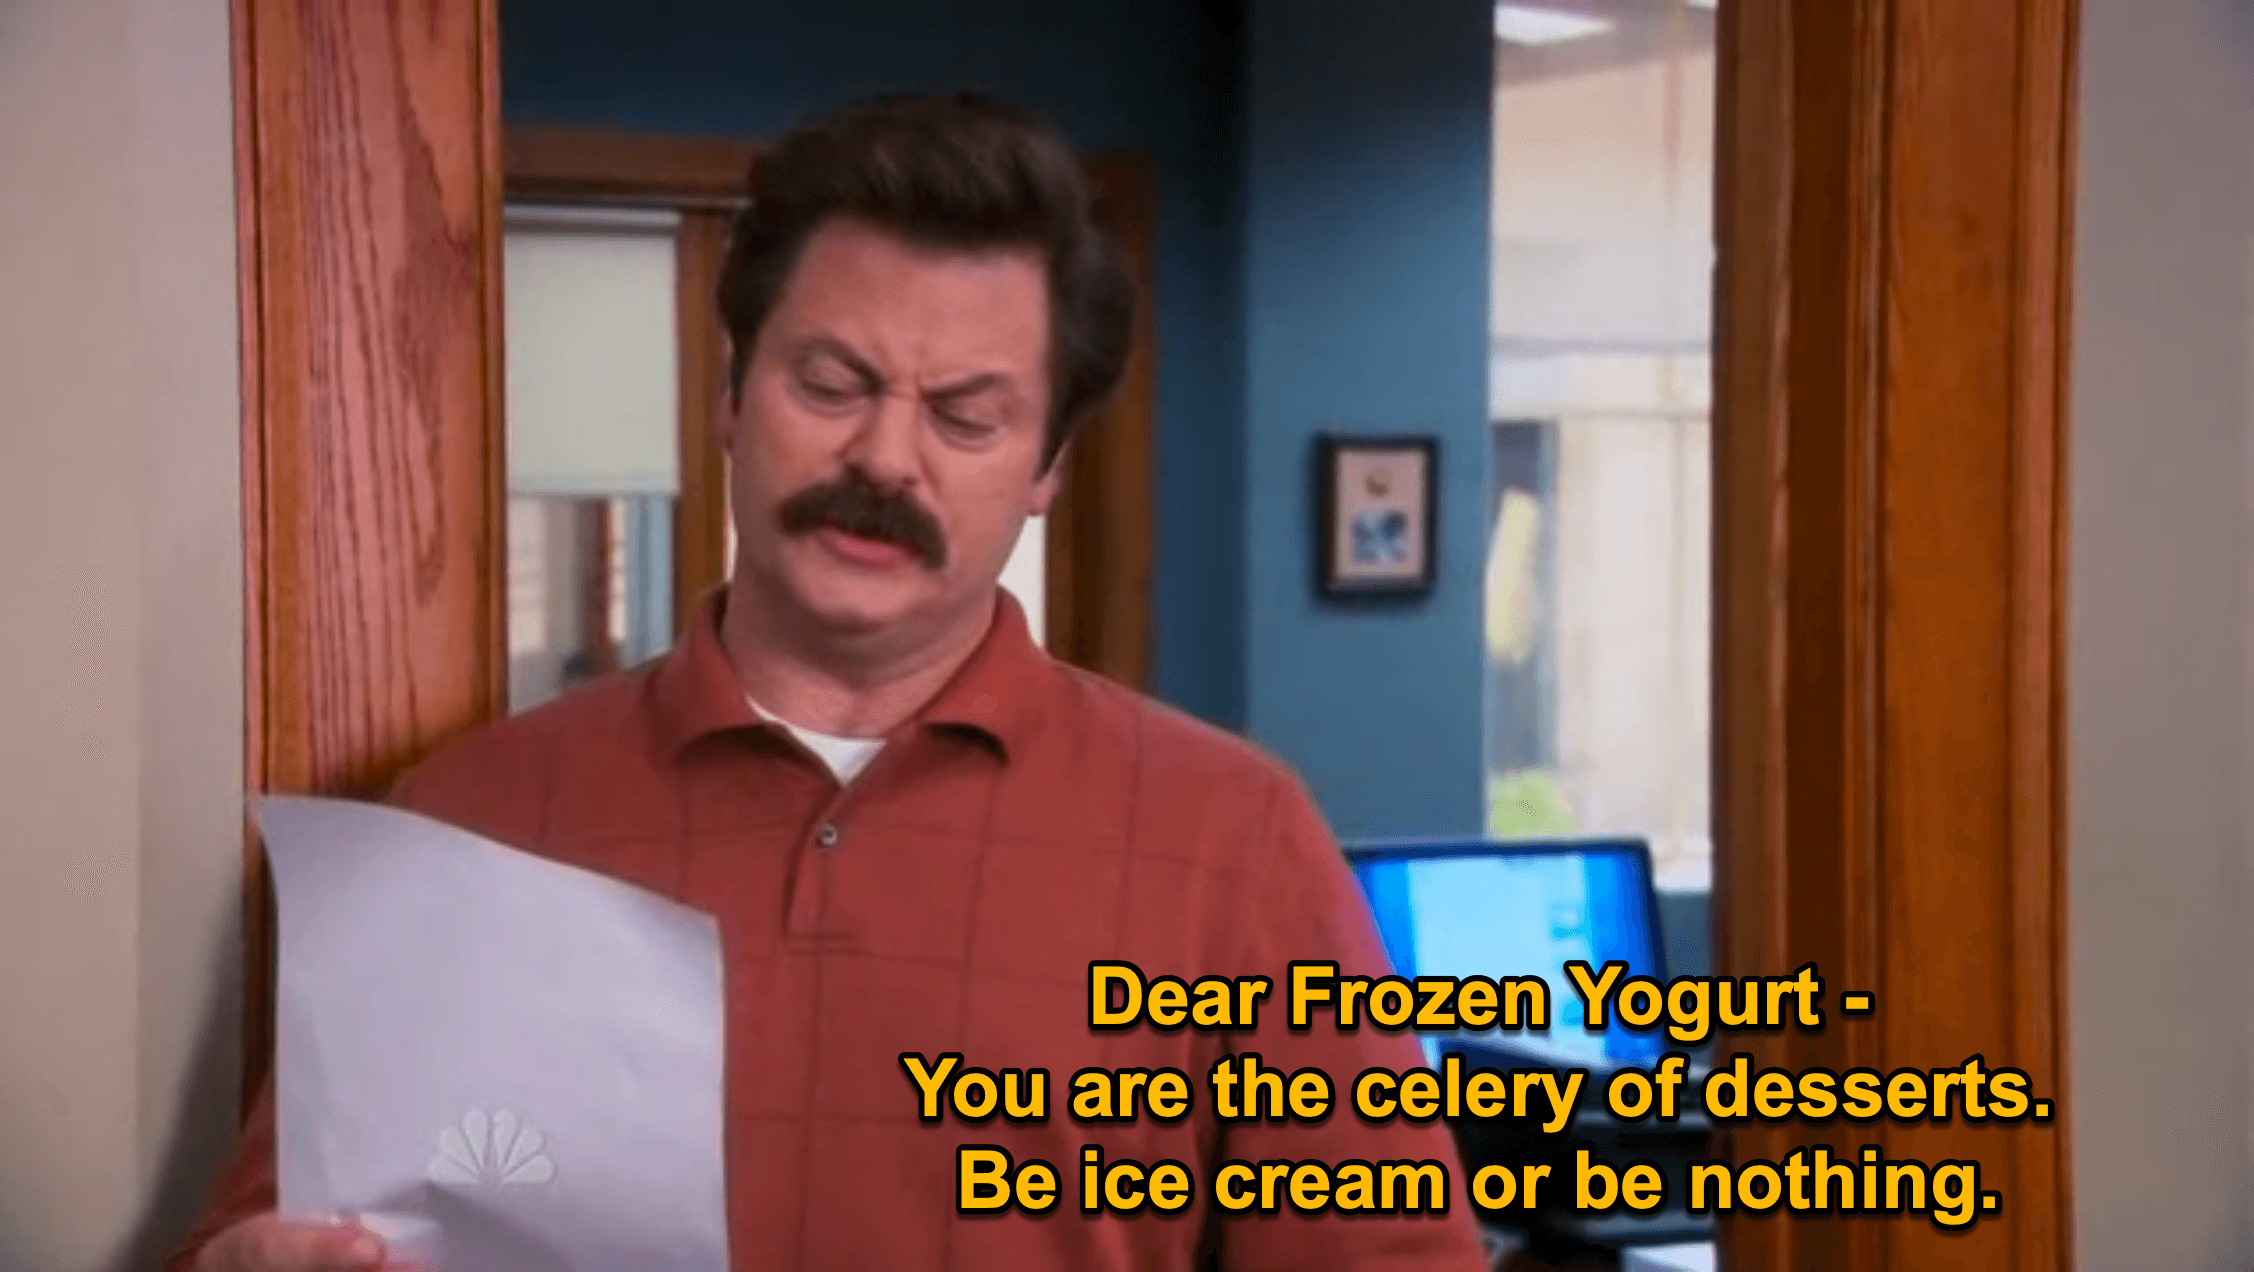 Ron Swanson's thoughts on frozen yogurt